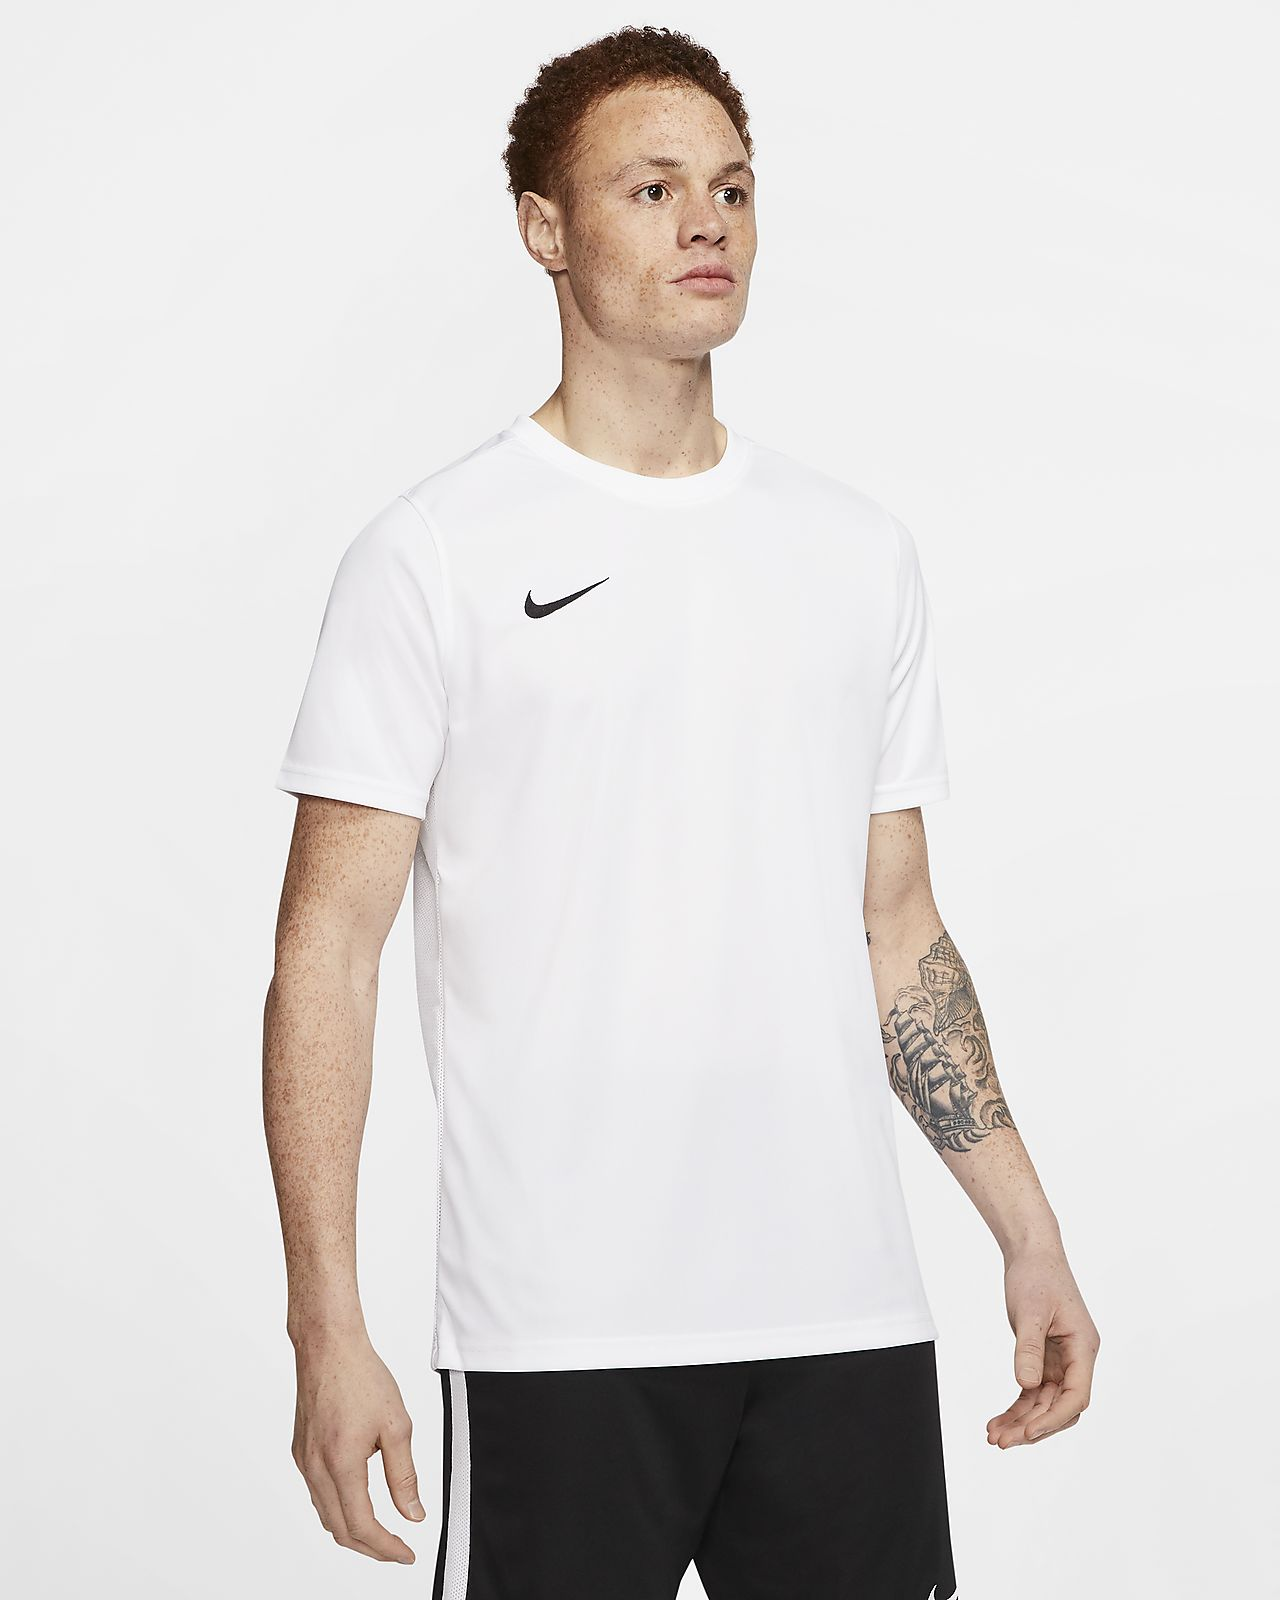 Nike Dri-FIT Park 7 Men's Football Shirt